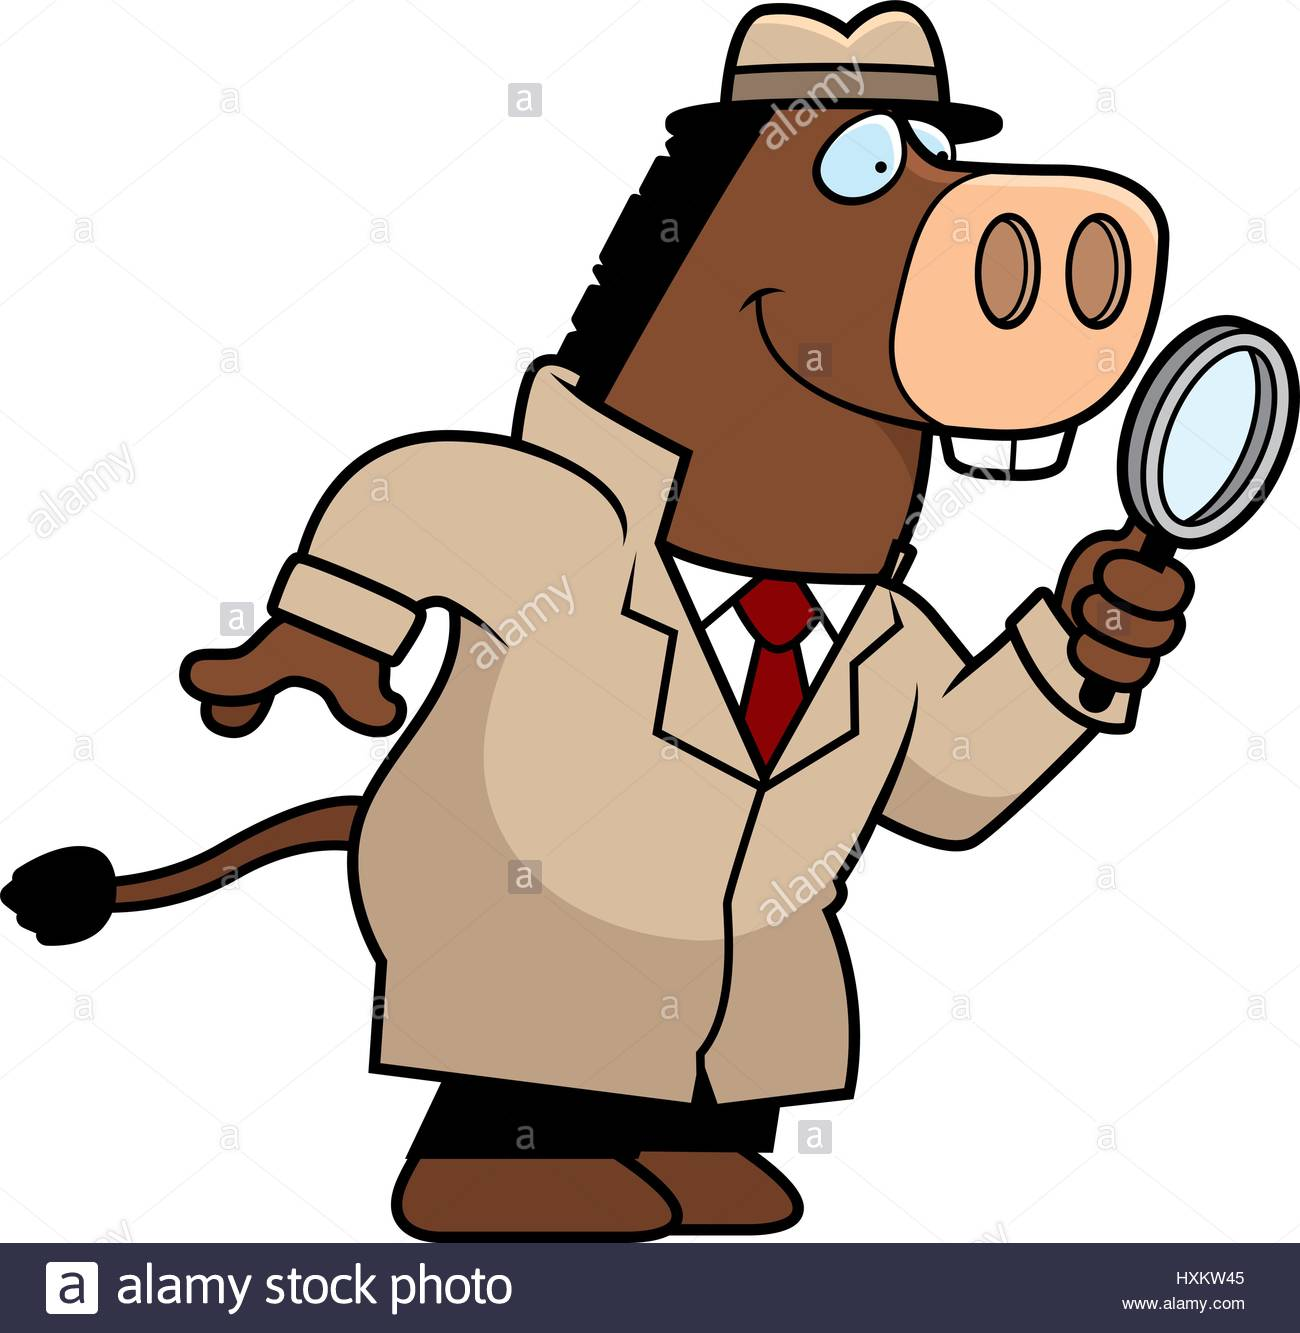 1300x1333 A Cartoon Illustration Of A Donkey Detective With A Magnifying